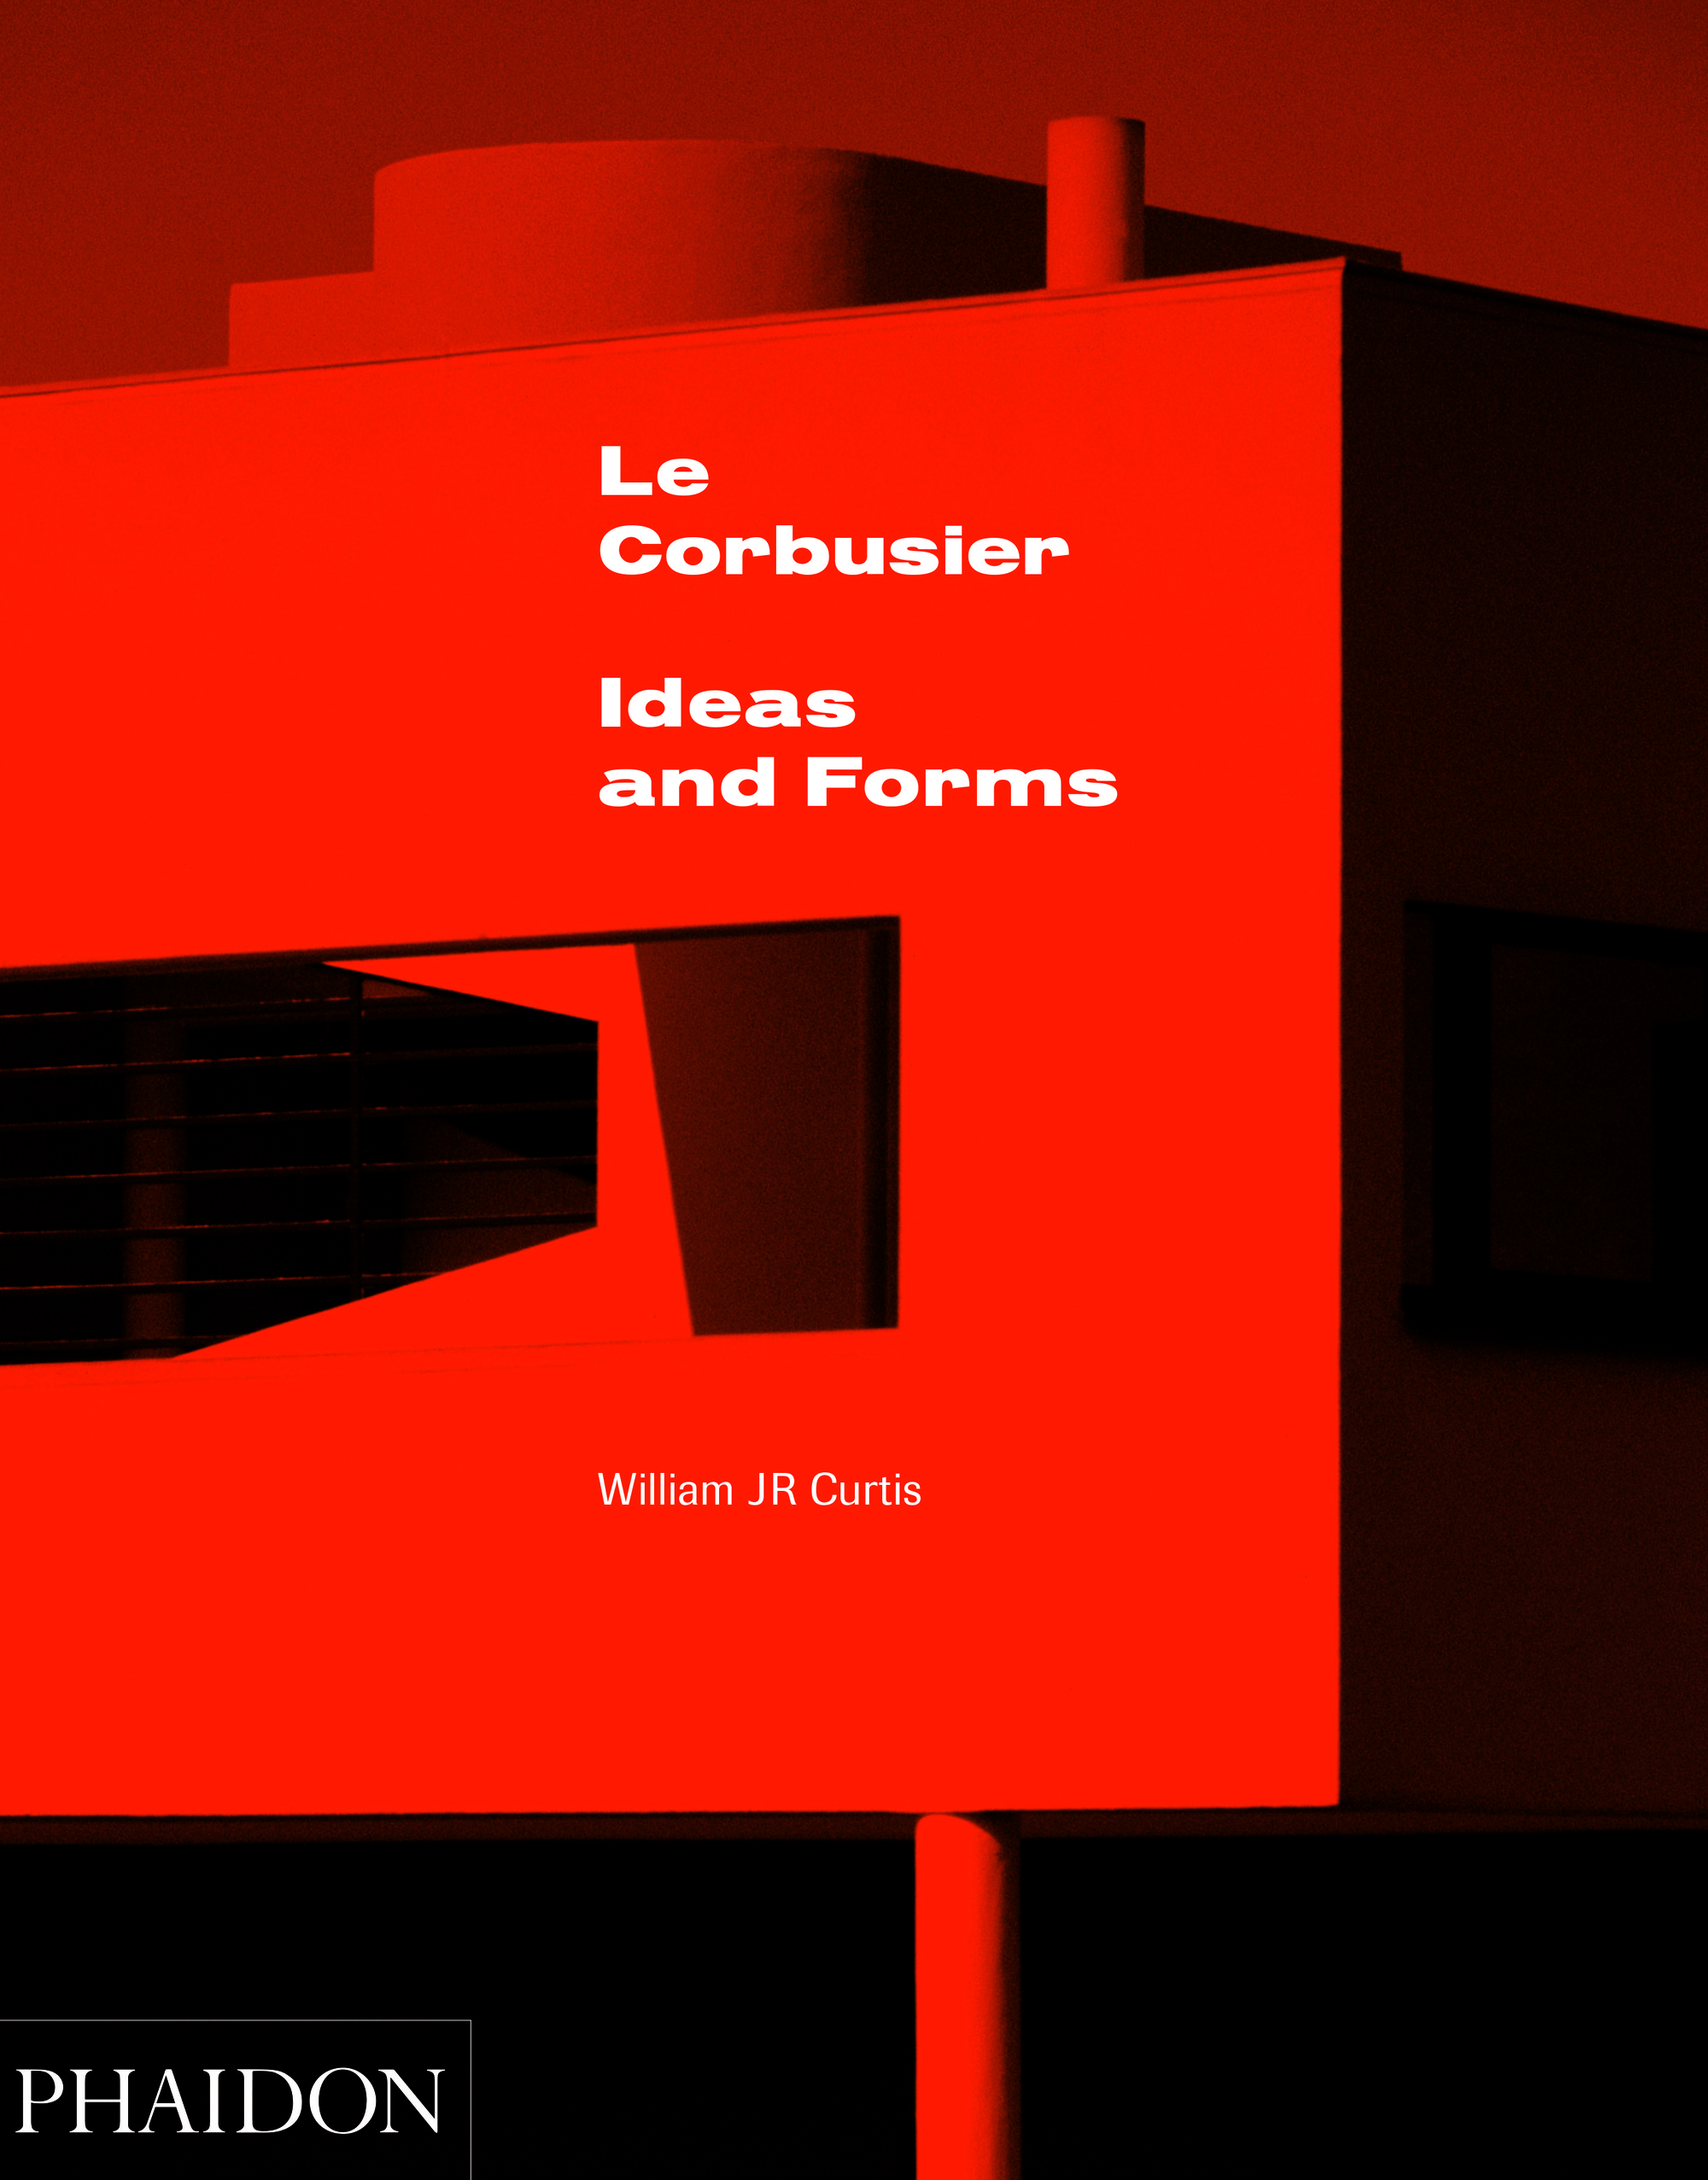 Le corbusier ideas and forms archdaily solutioingenieria Image collections